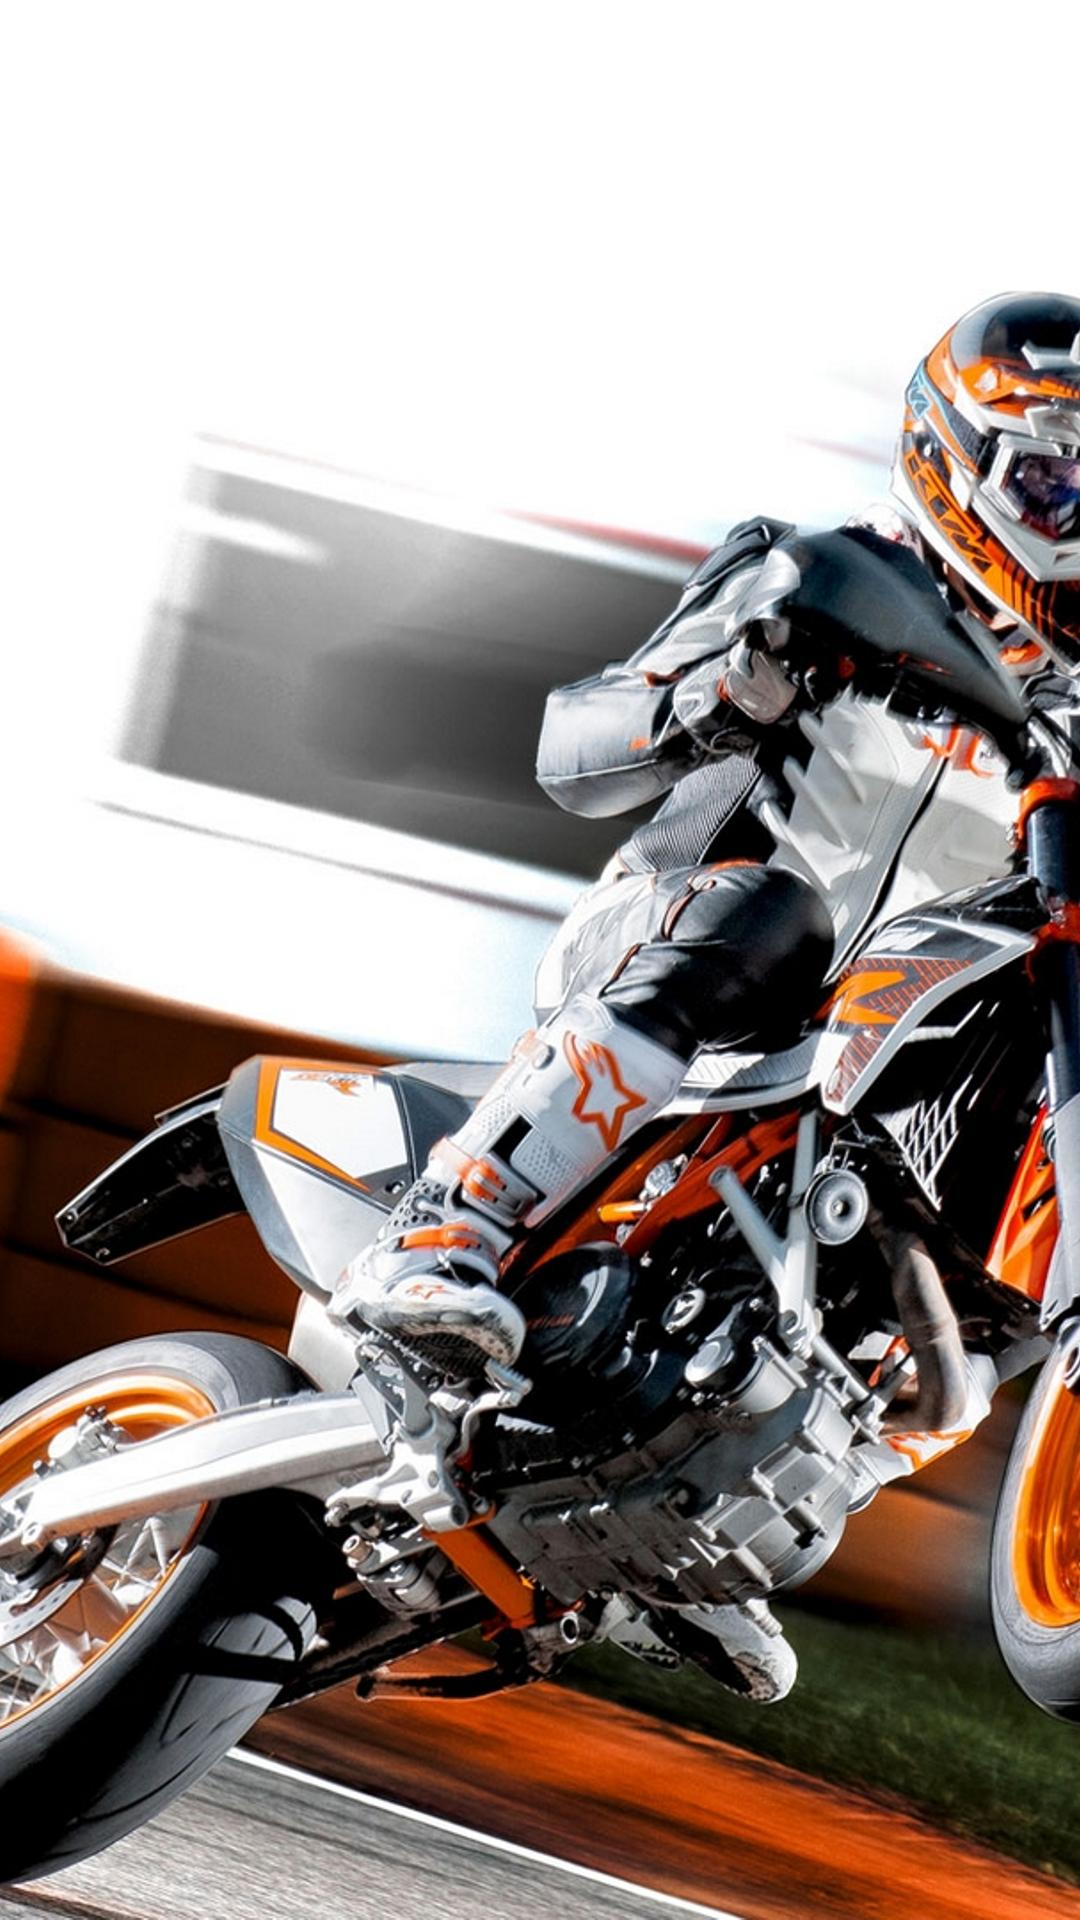 Ktm 690 smc r wallpapers for desktop - Insane Wheelies Ktm 690 Smc R On A Racing Track Wallpaper Download 1080x1920